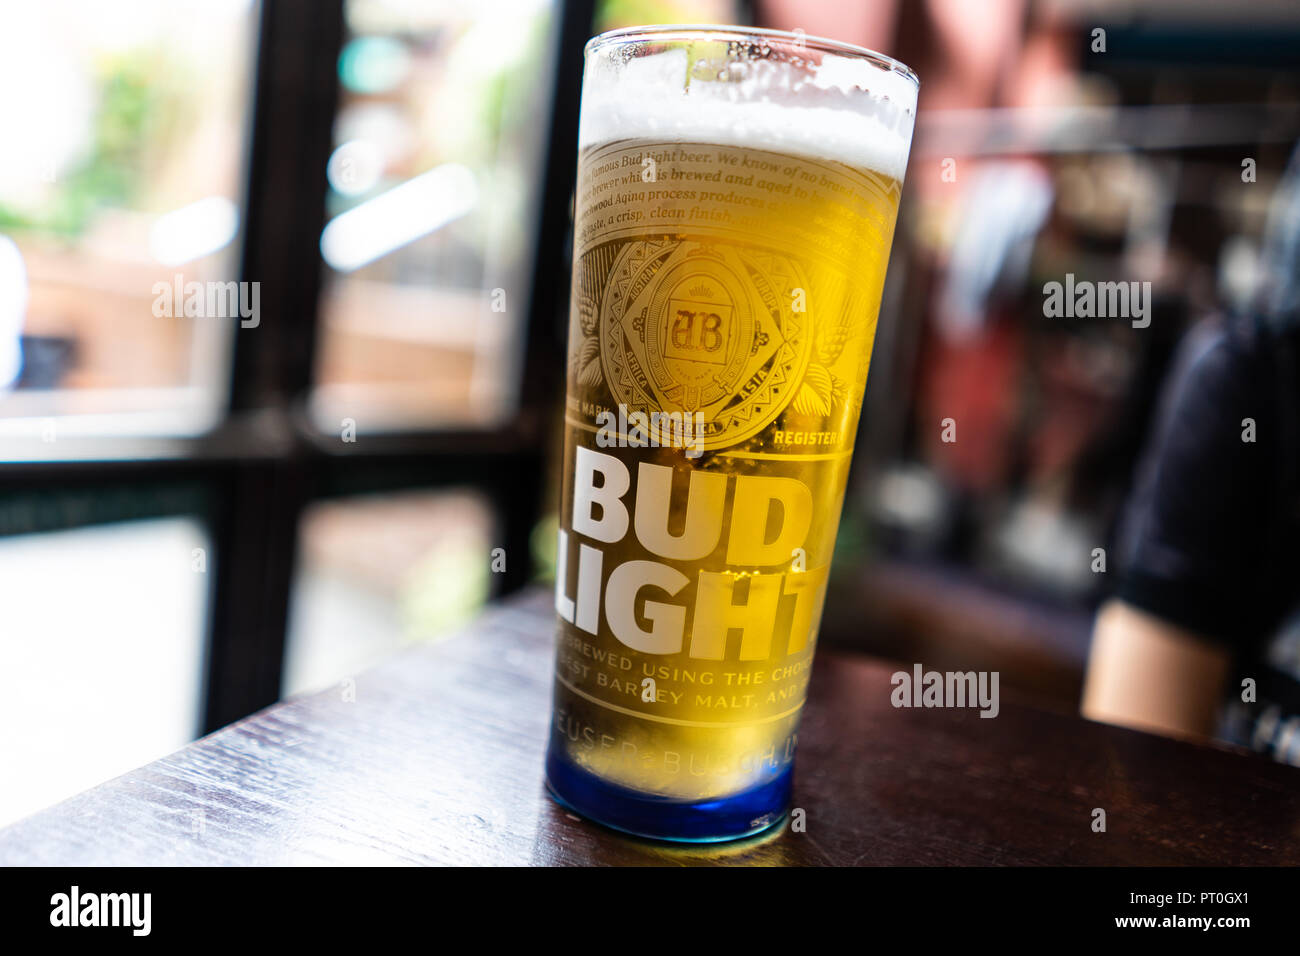 Bud Light Beer Stock Photos Amp Bud Light Beer Stock Images